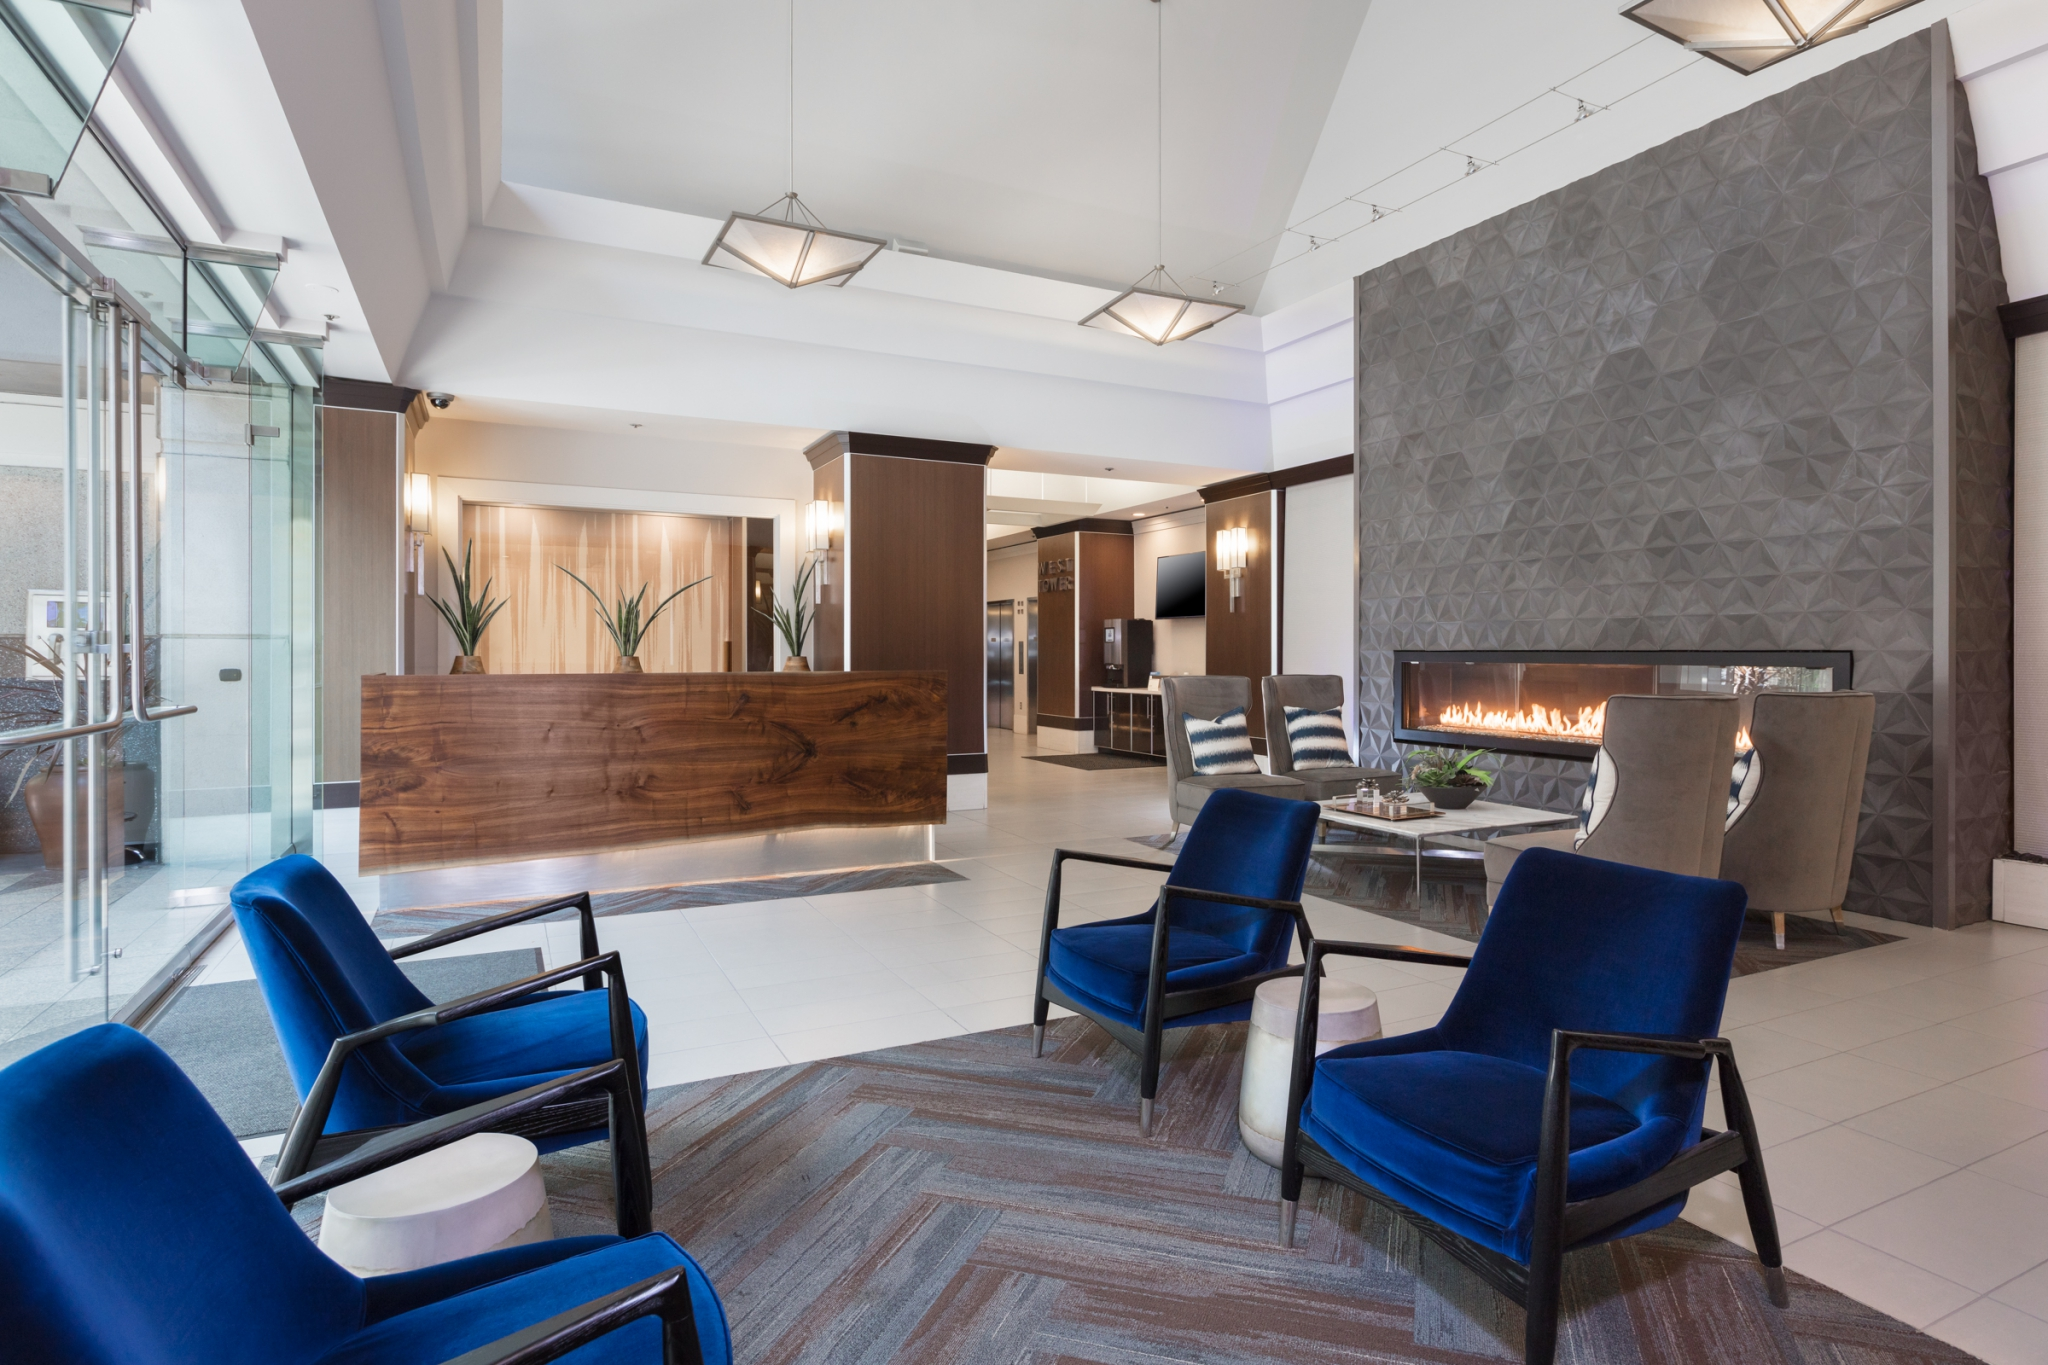 Lobby reception areas with chairs, coffee table and a long gas fireplace.